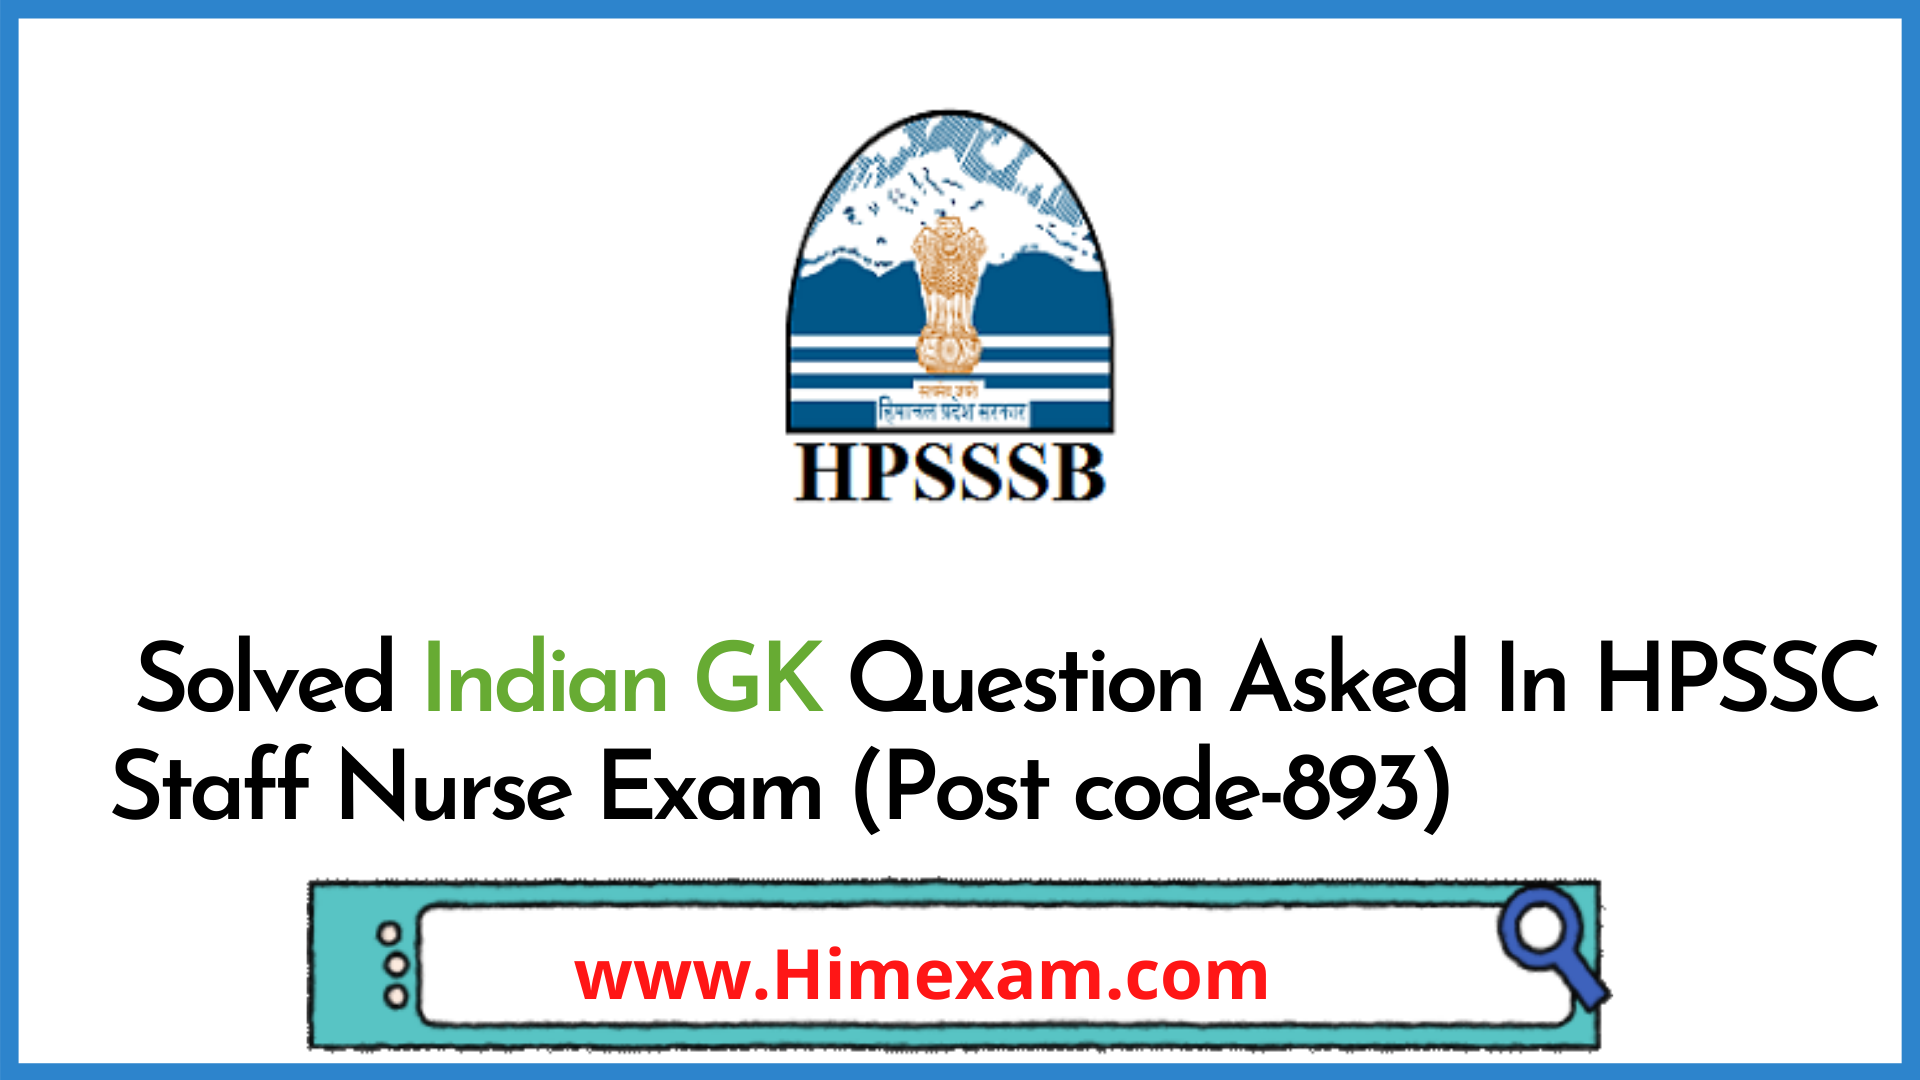 Solved Indian GK Question Asked In HPSSC Staff Nurse Exam (Post code-893)